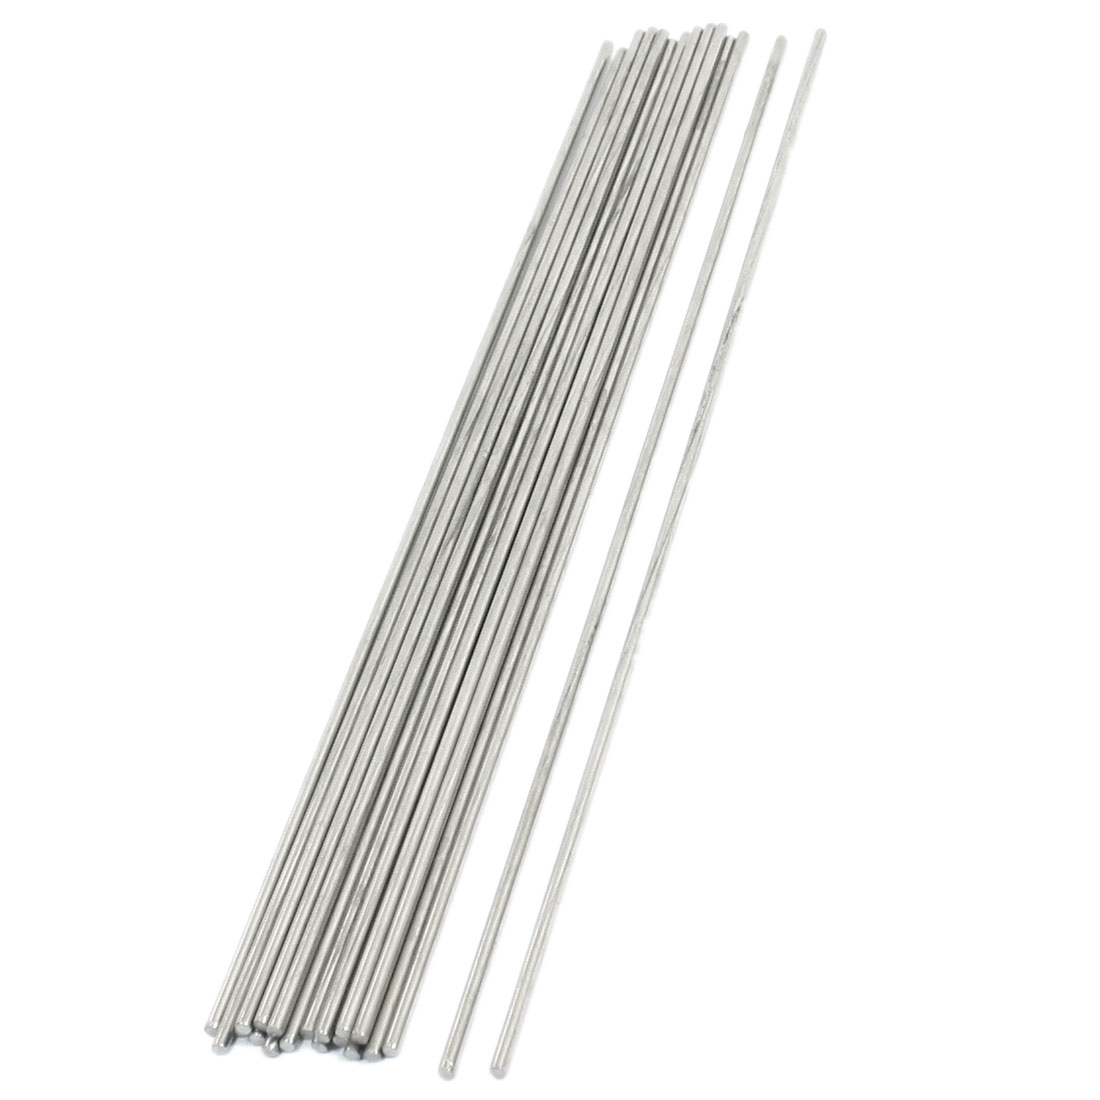 20PCS RC Aircraft Parts Stainless Steel Straight Bar Shaft 250mm x 2.5mm